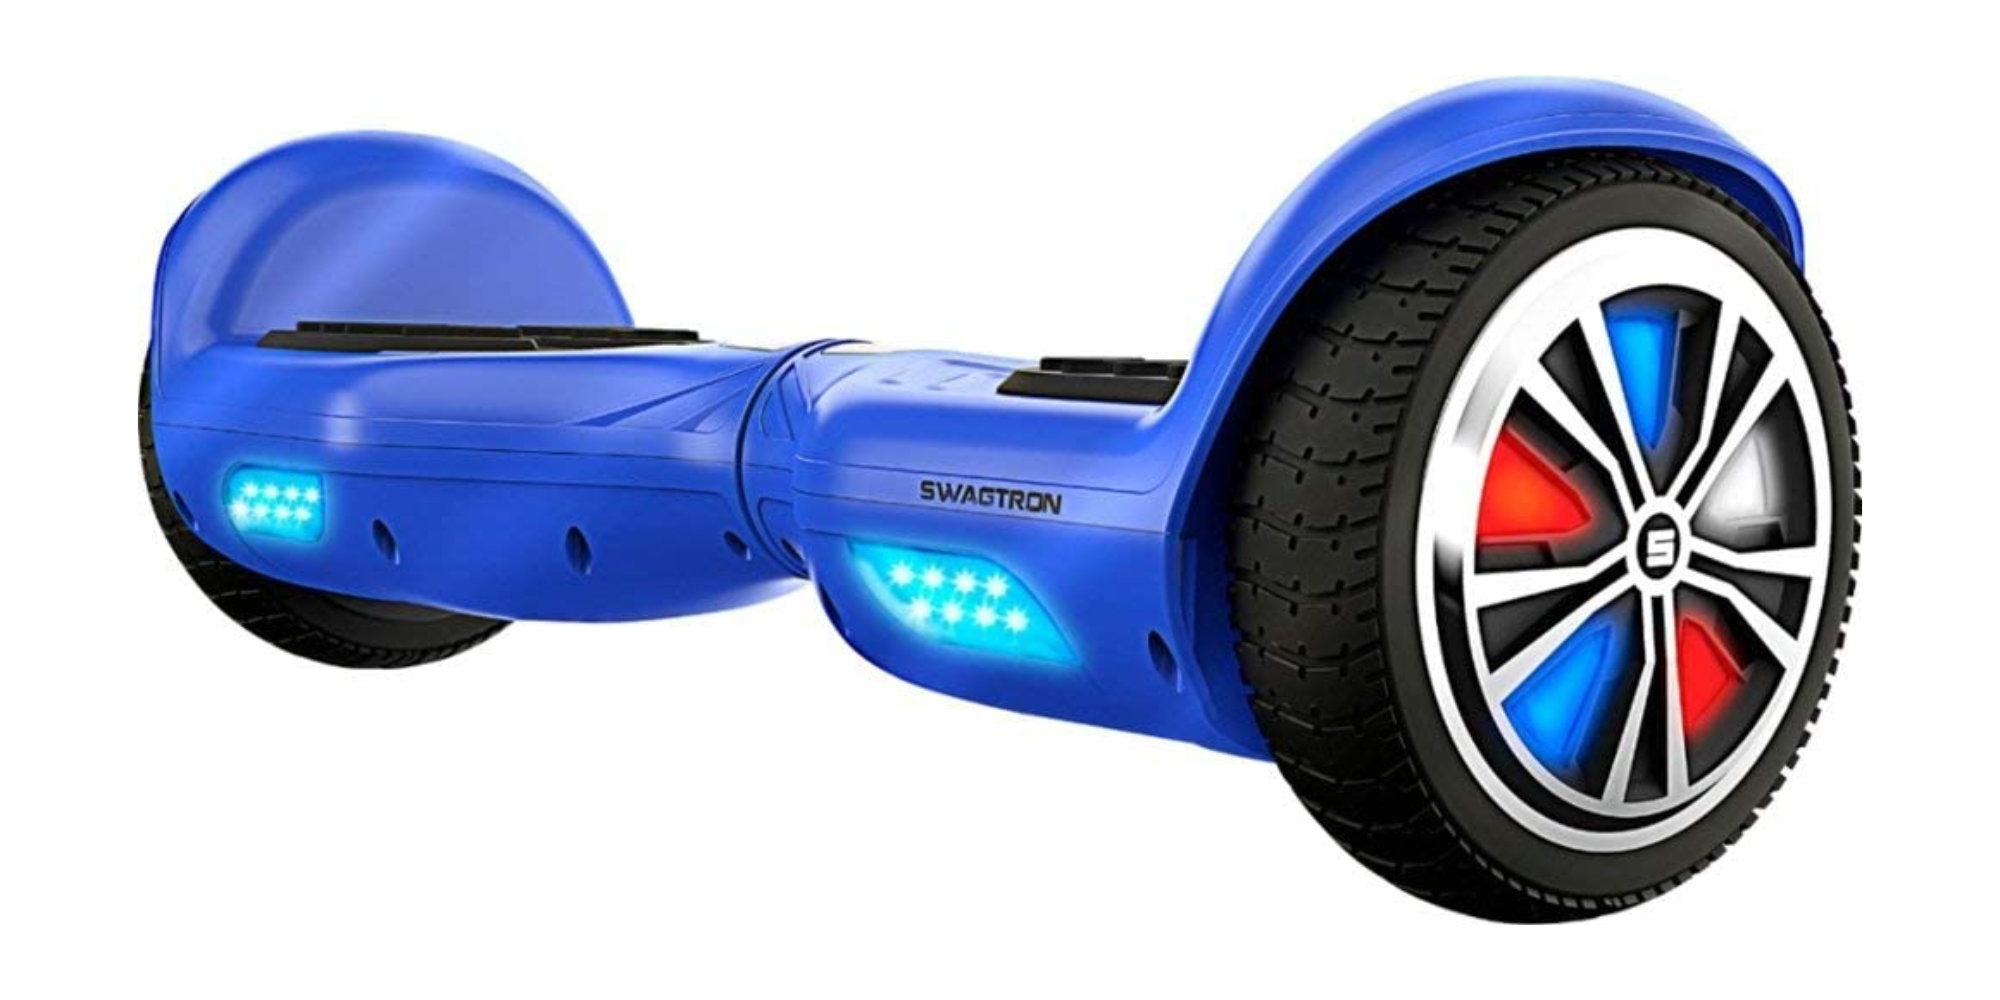 Snag Swagtron's $110 Swagboard Hoverboard while it's $40 off at Amazon